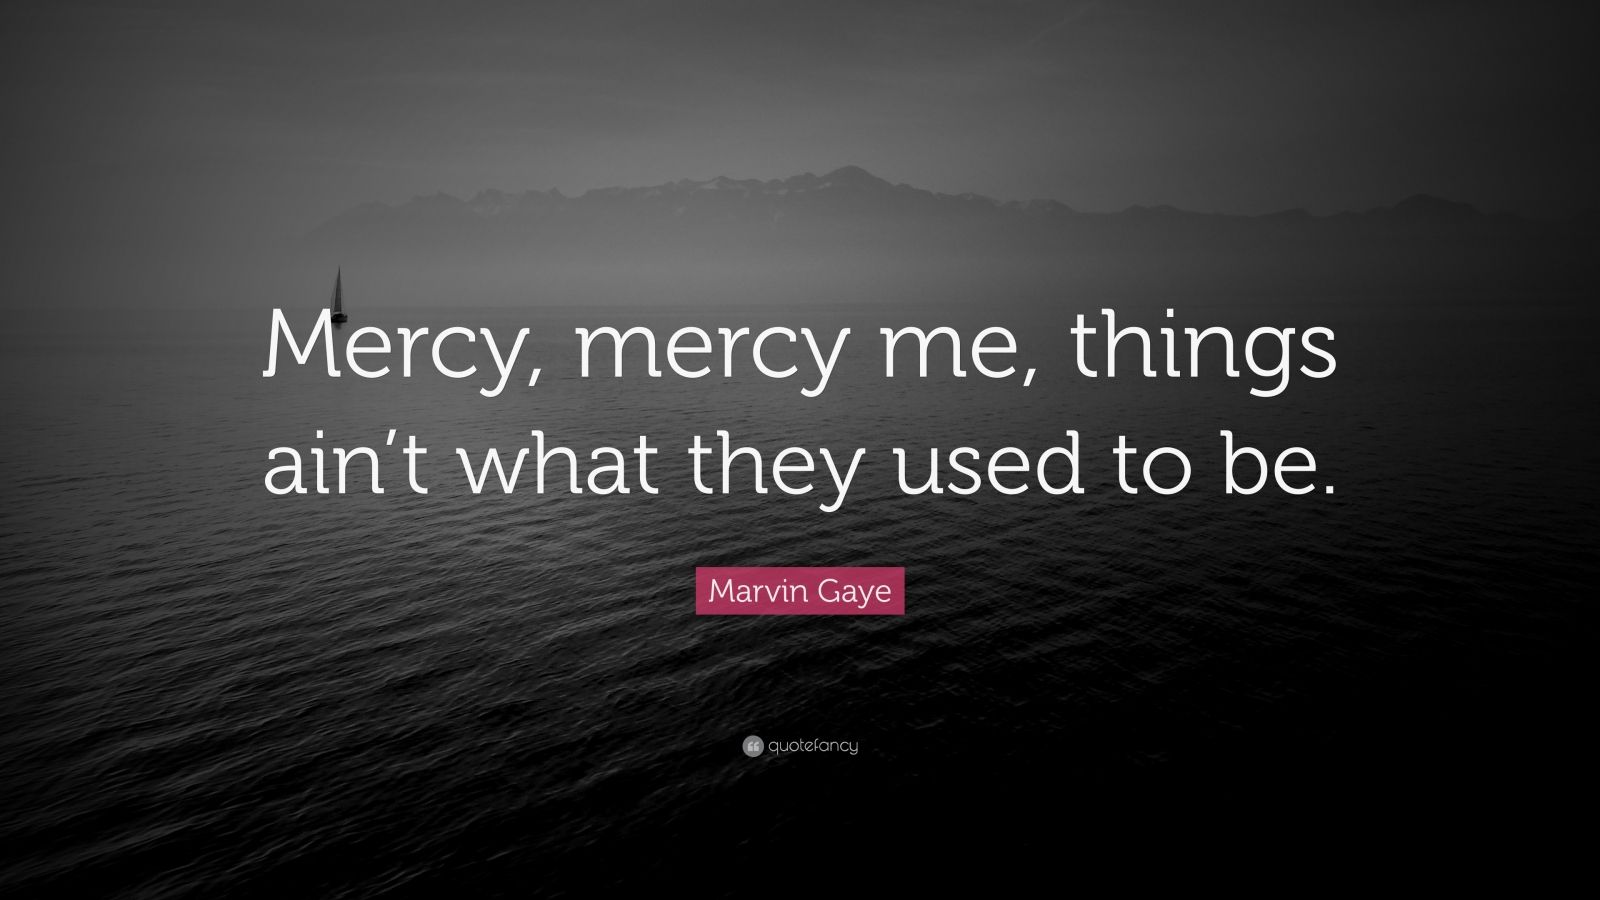 """Marvin Gaye Quote: """"Mercy, mercy me, things ain't what they used to be."""""""